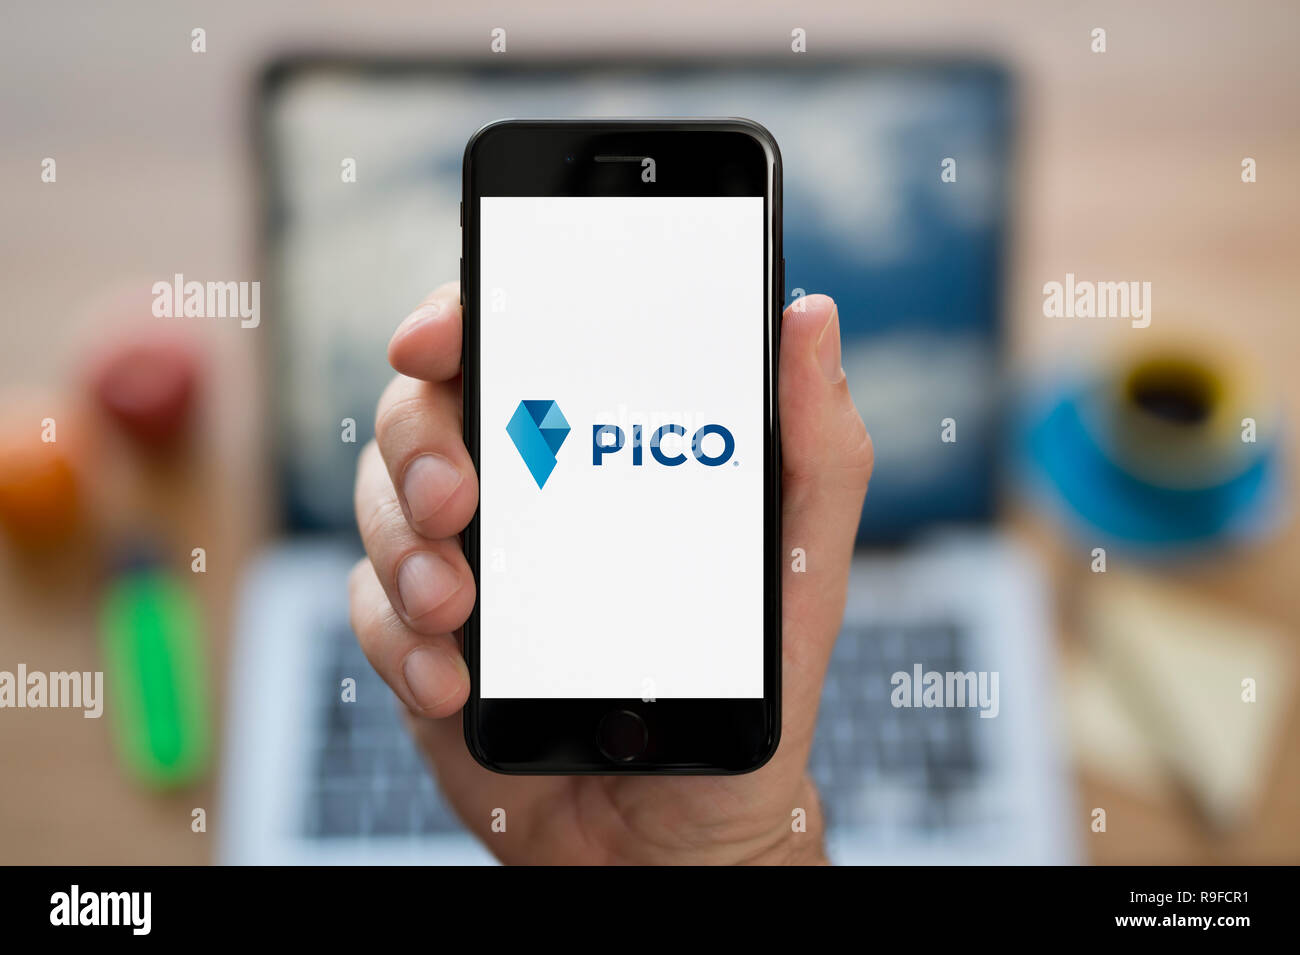 A man looks at his iPhone which displays the Pico Trading logo (Editorial use only). - Stock Image